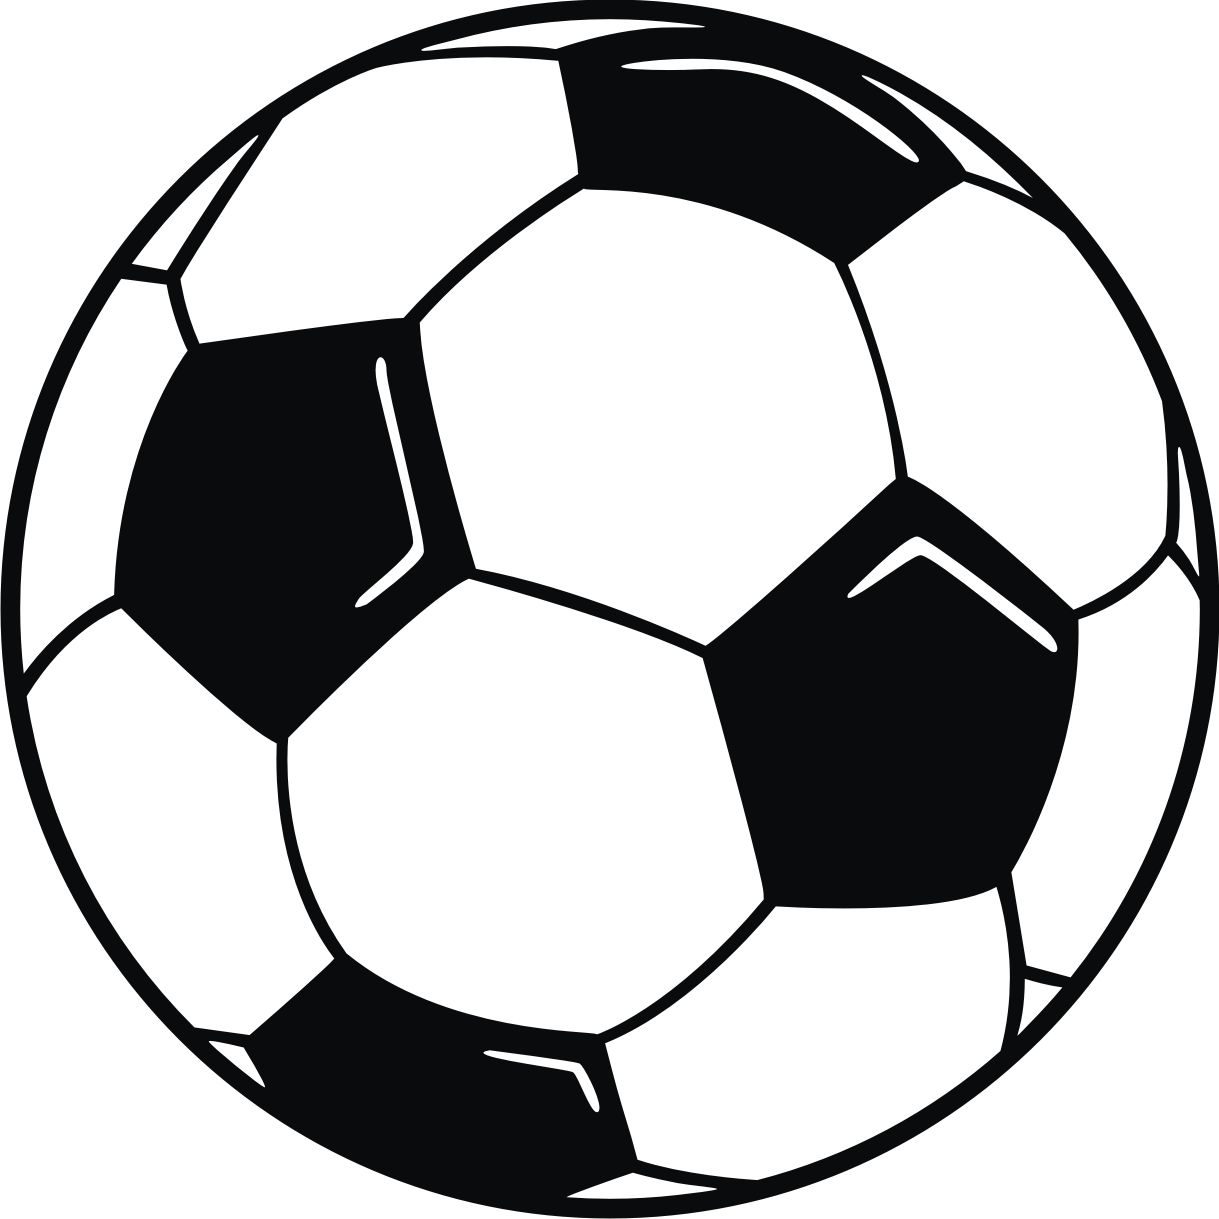 Clip Art Clipart Soccer Ball printable picture of a soccer ball clipart best free clip art ball